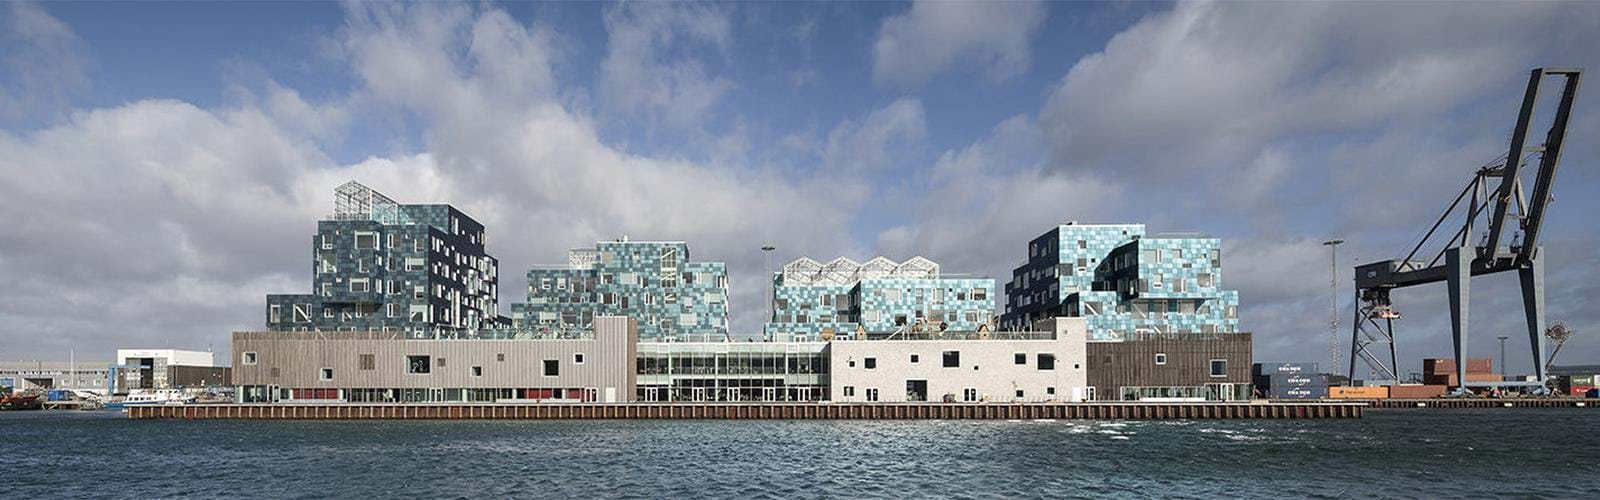 Copenhagen International School i Nordhavnen